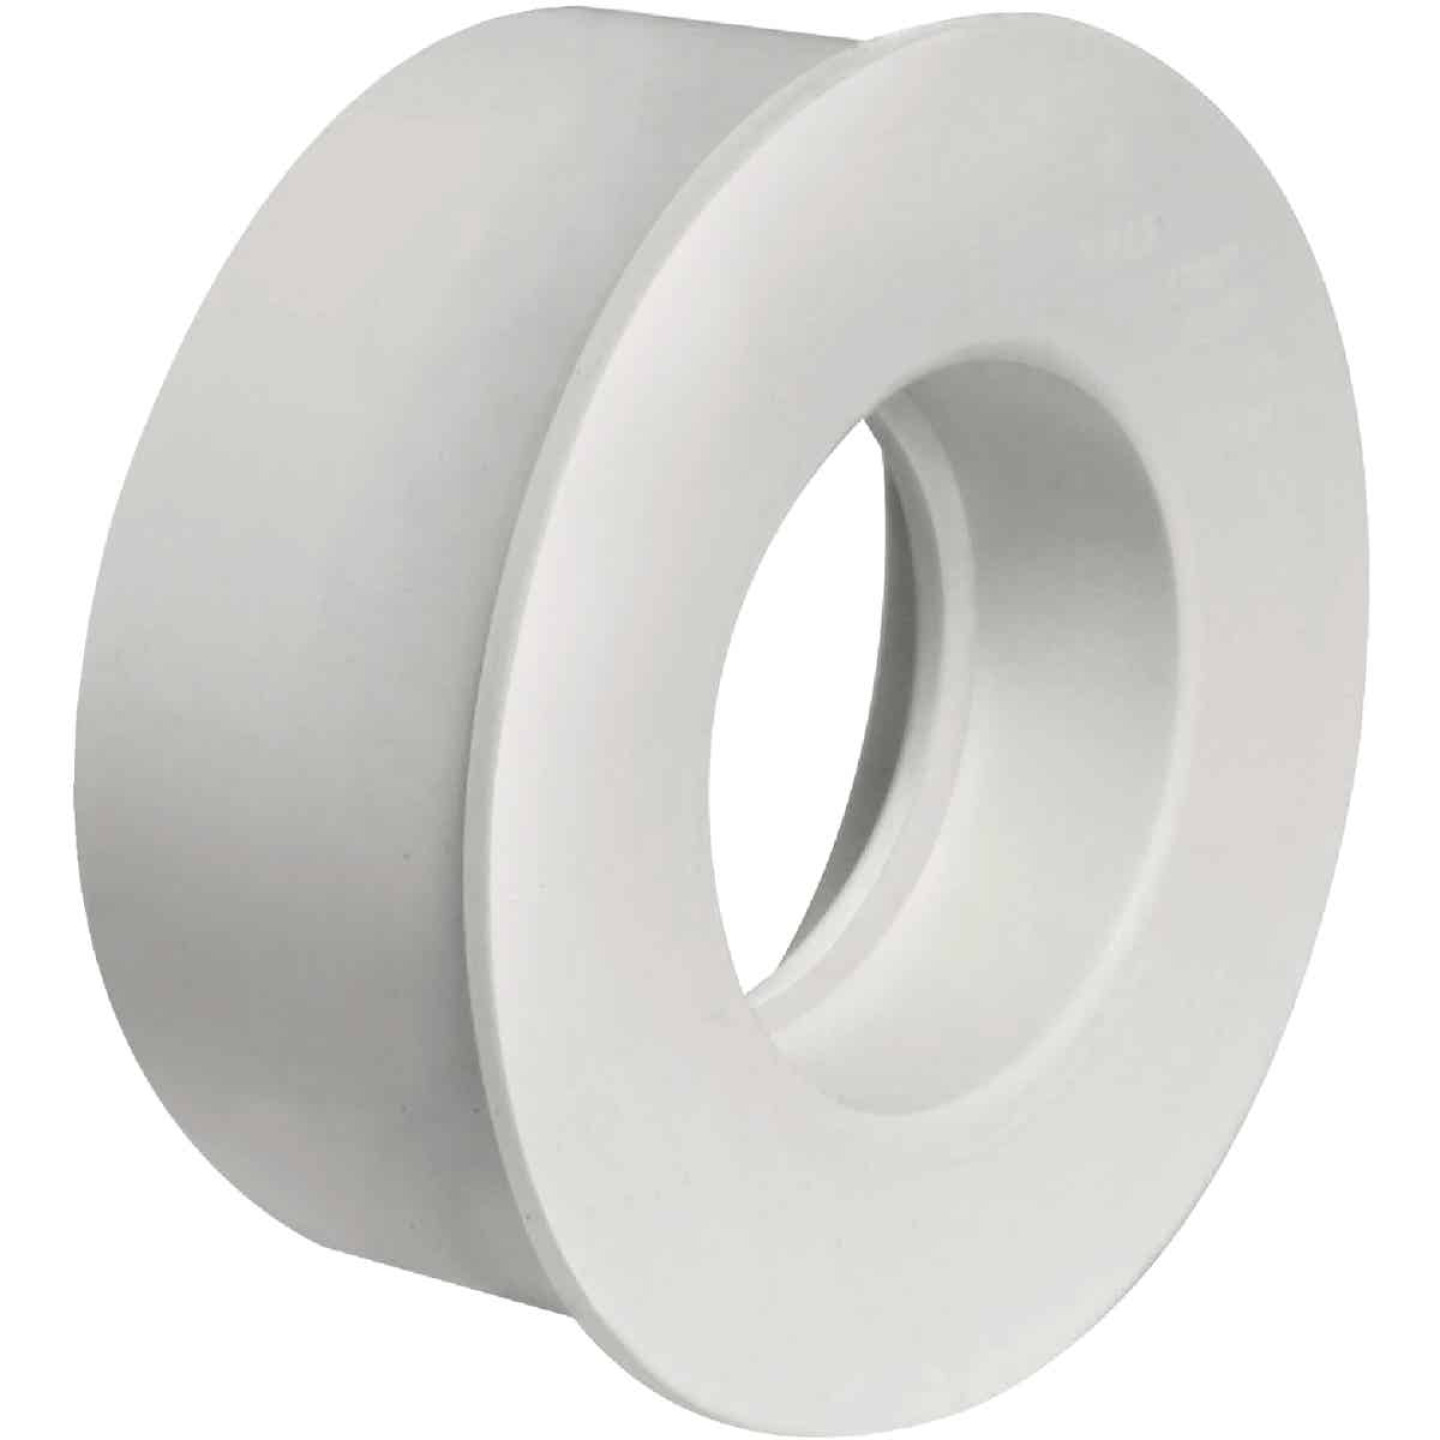 IPEX Canplas Schedule 40 4 In. to 2 In. PVC Sewer and Drain Bushing Image 1